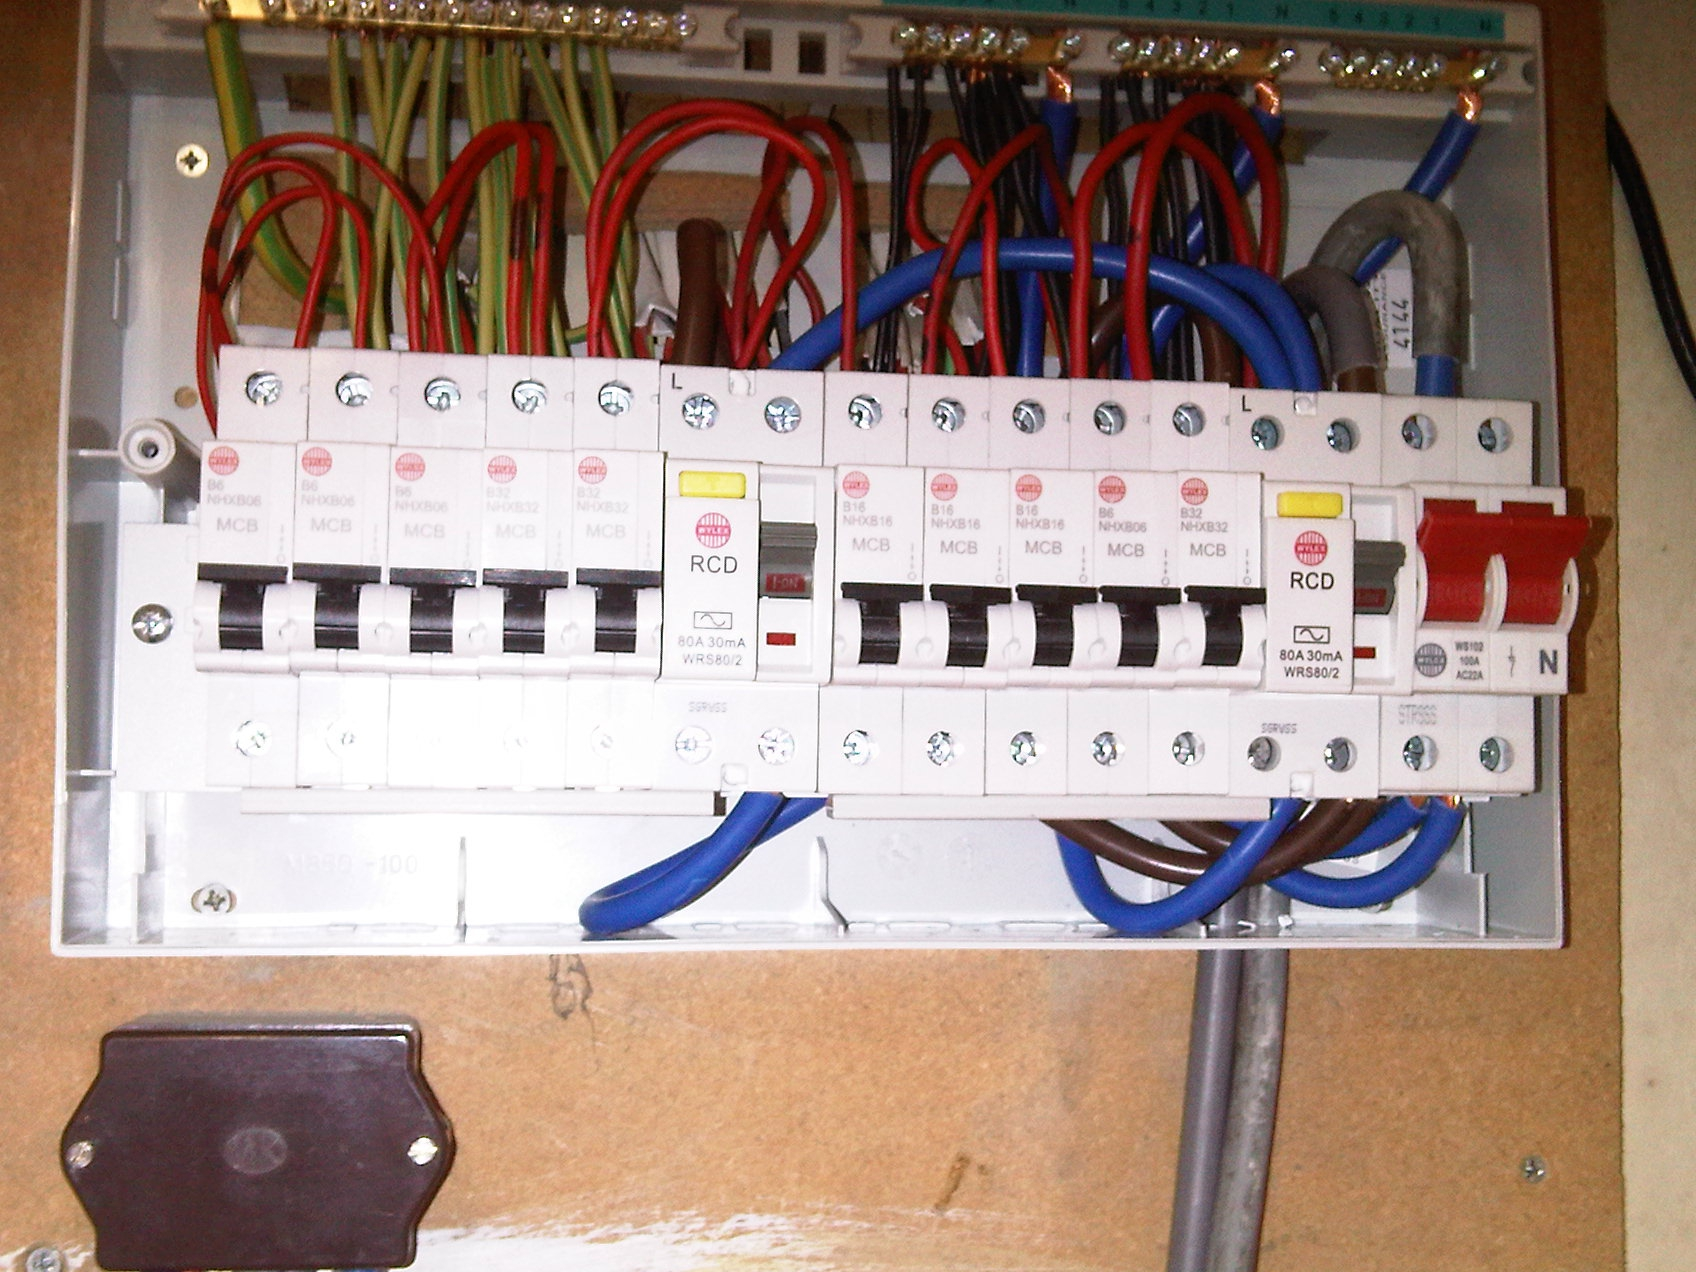 Fusebox 4 household fuse box residential fuse boxes \u2022 wiring diagrams j how to fix a fuse box in a house at bayanpartner.co